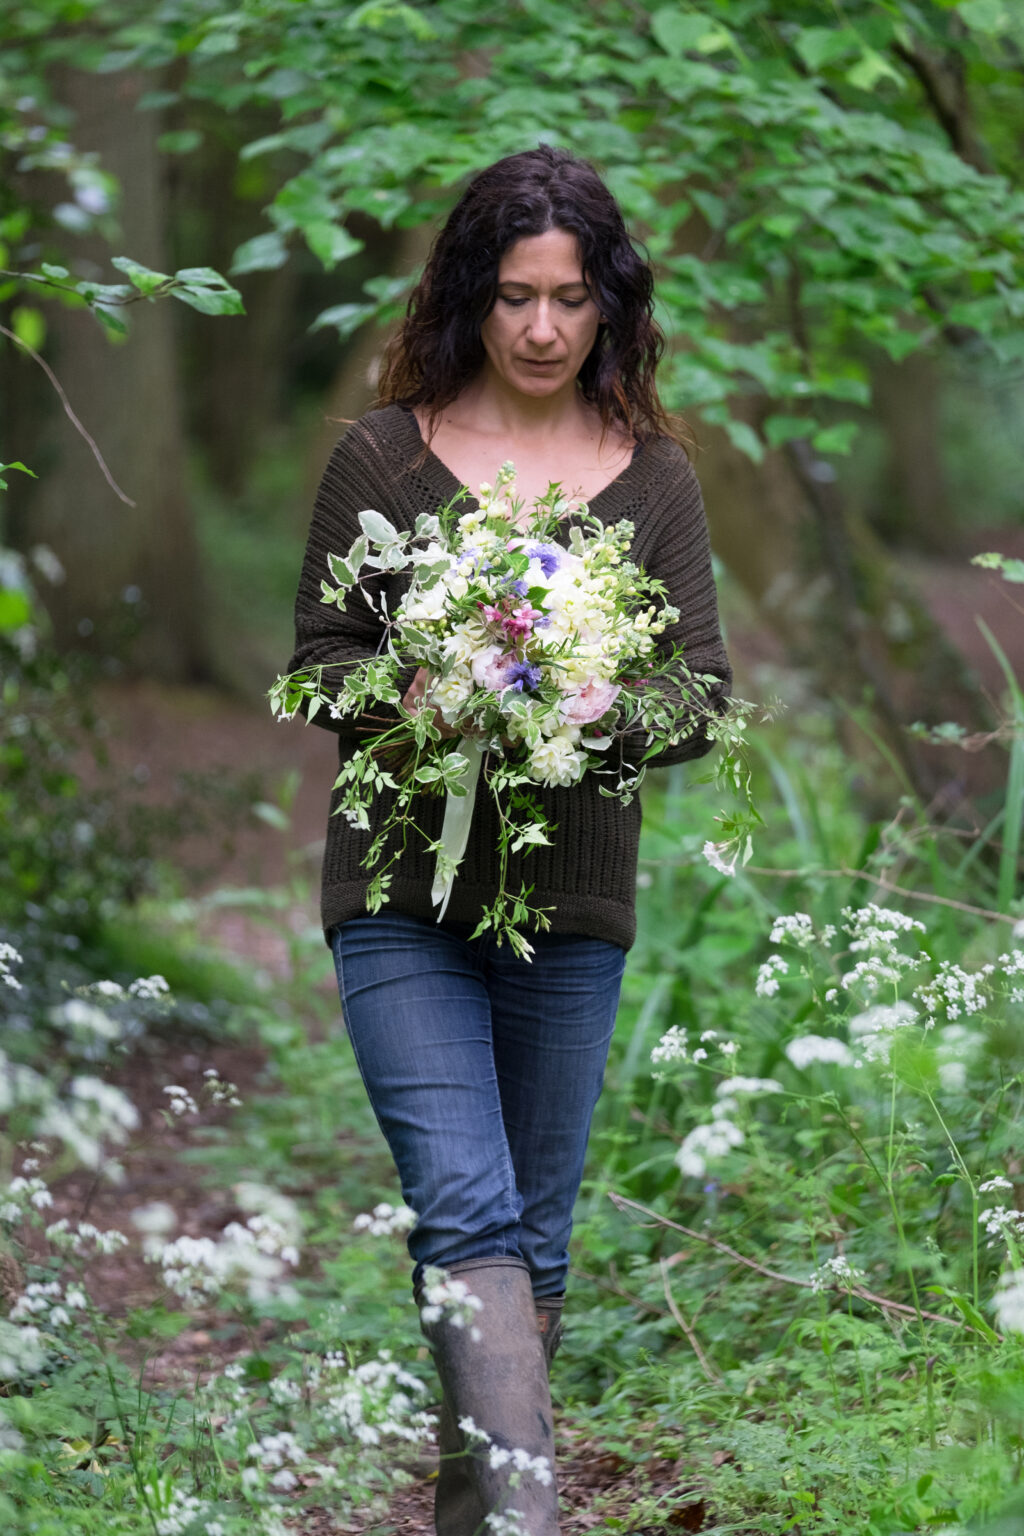 Emma de Sousa, Urban Flower Farmer walks along a grassy path, surrounded by hedges and greenery, holding a seasonal wedding bouquet of flowers she has grown in her cutting garden. Photo: Emma Davies Photography.